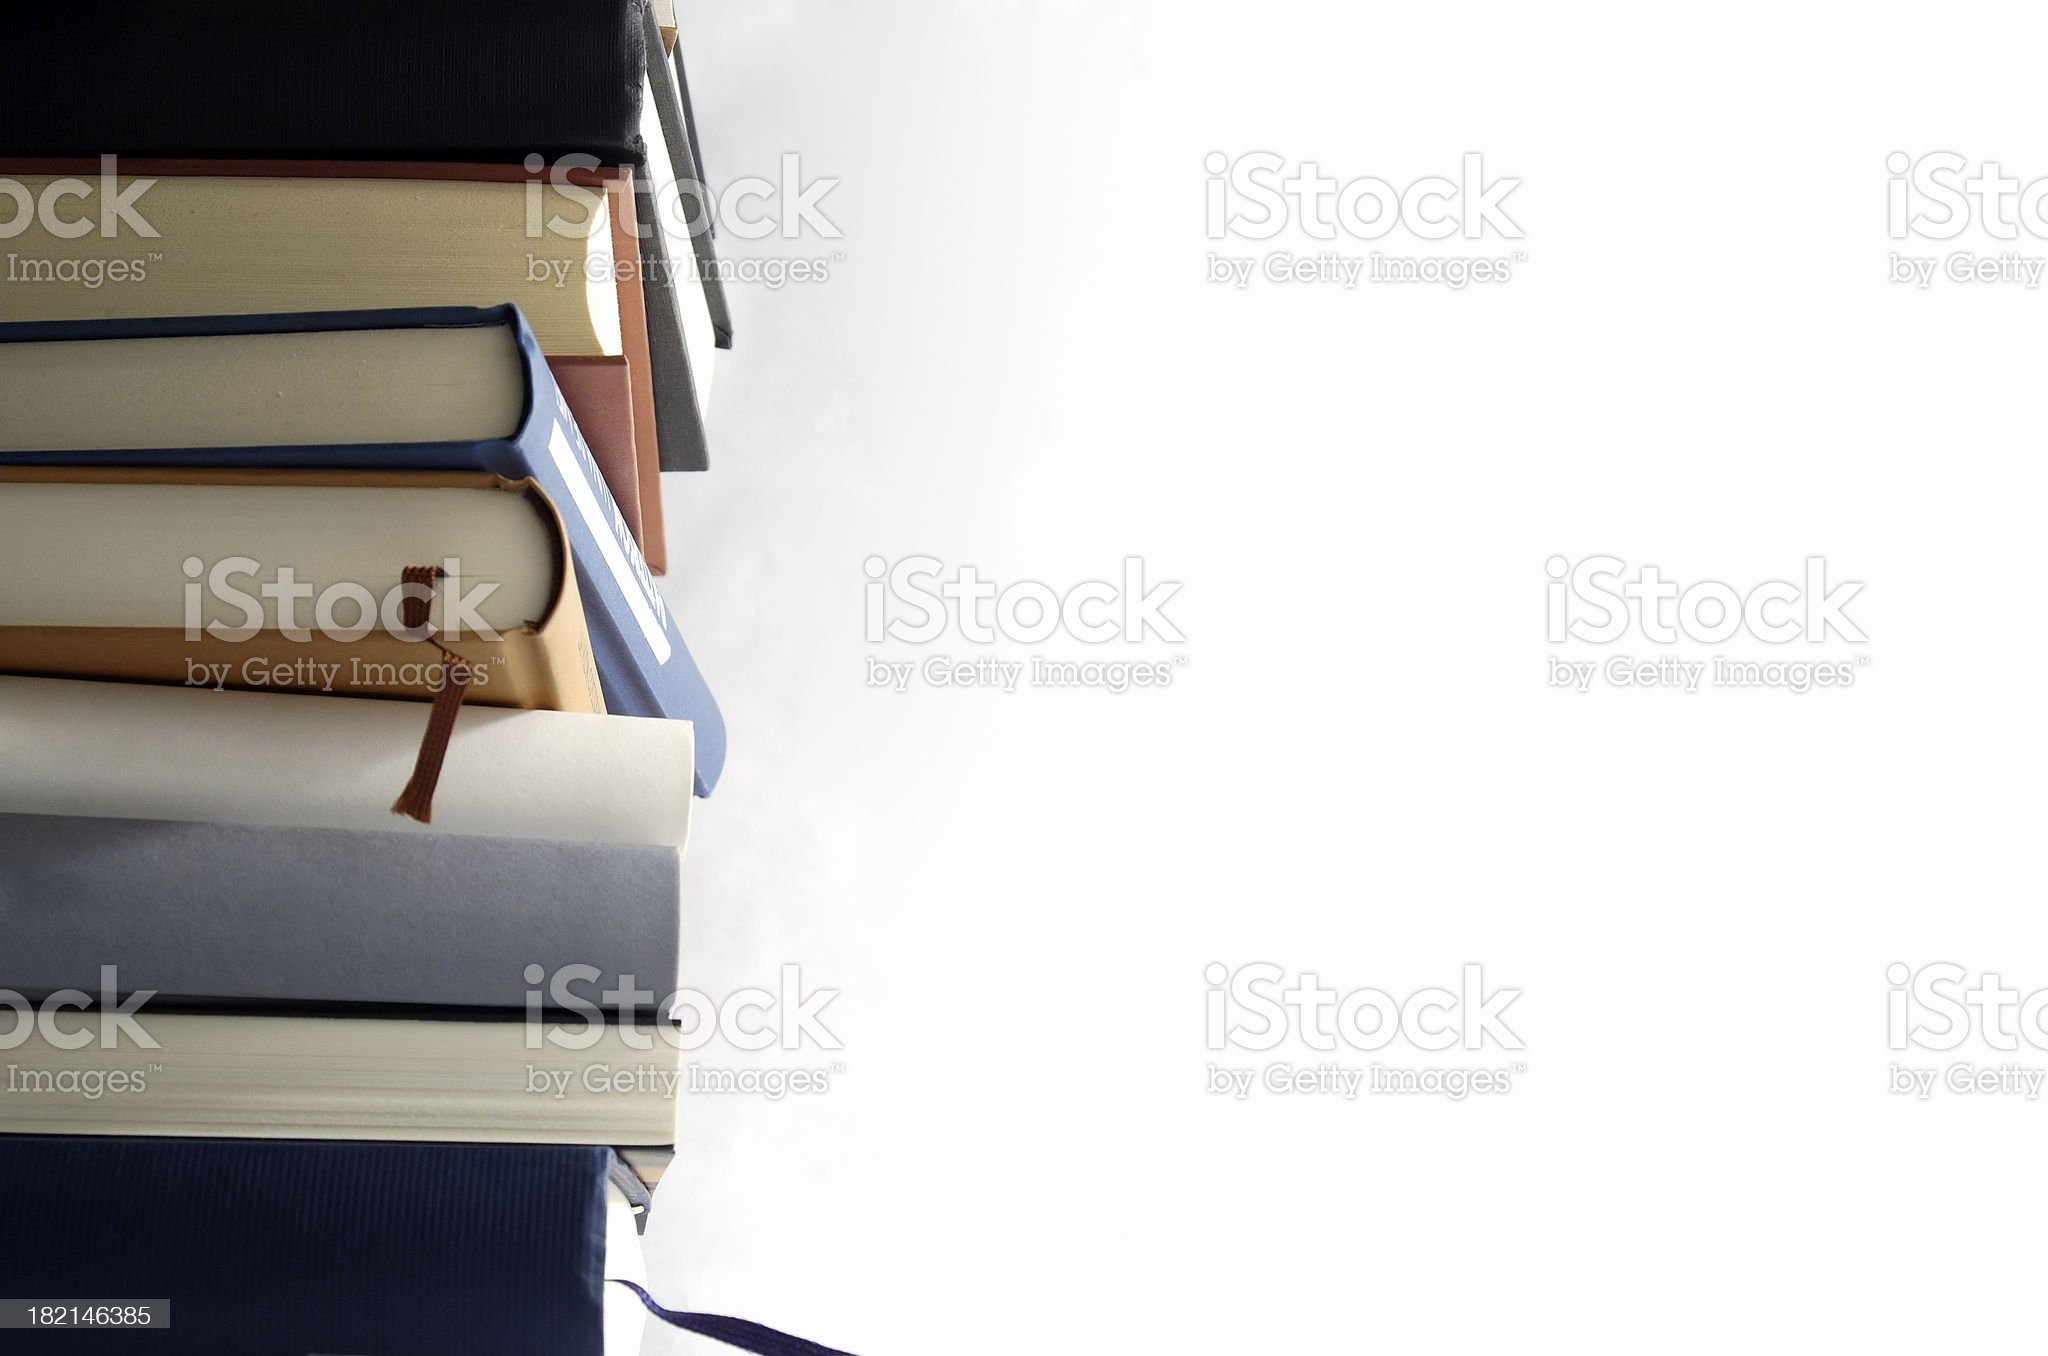 Pile of books royalty-free stock photo